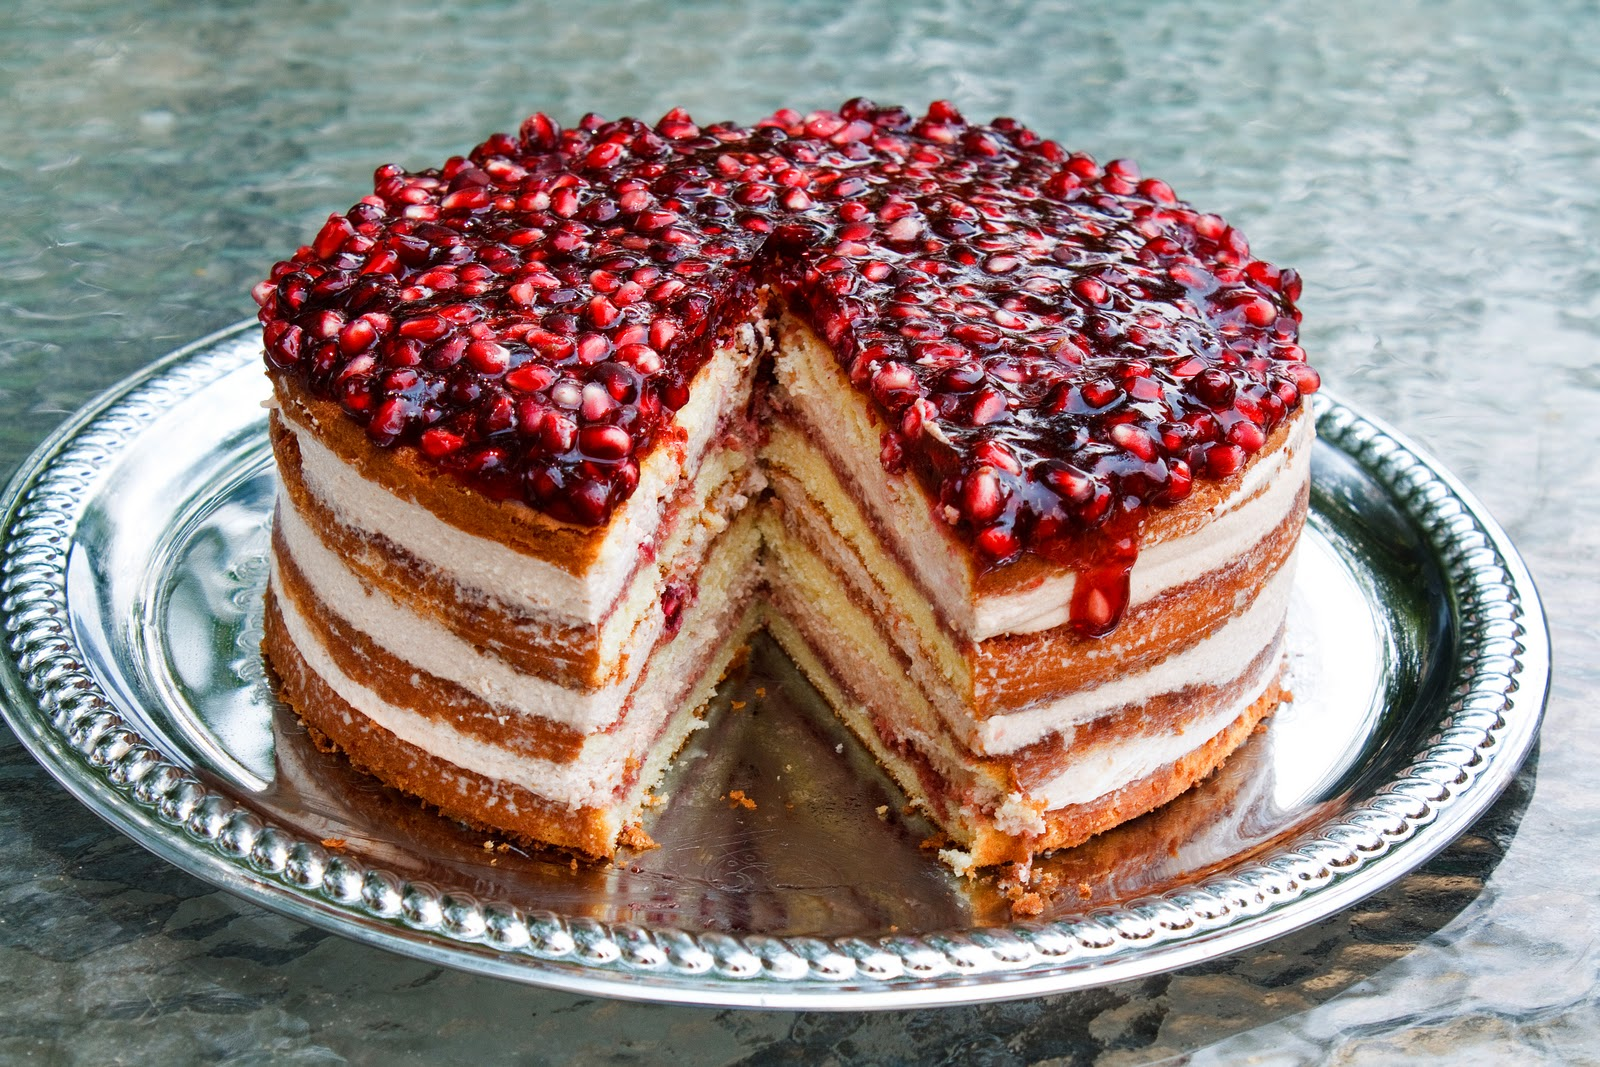 via Ask Chef Dennis http://www.askchefdennis.com/2010/06/theyll-be-eating-out-of-the-pom-of-your-hand-pomegranate-mousse-cake/